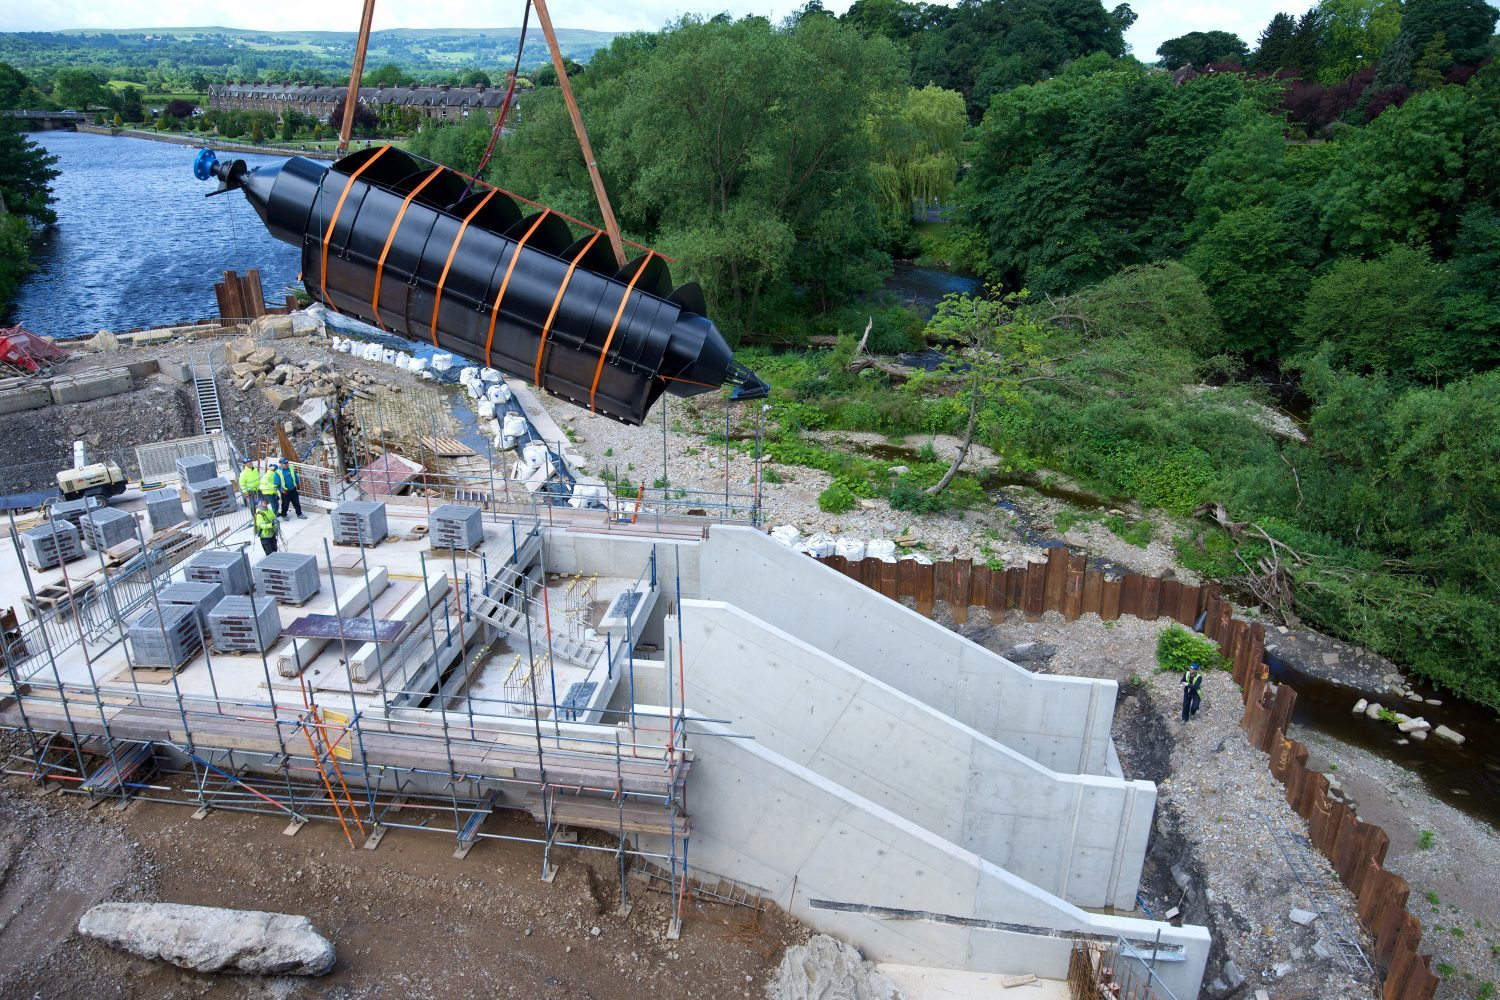 One of the two huge Archimedes screws that have been installed at the hydro-electric turbine on Otley Weir.